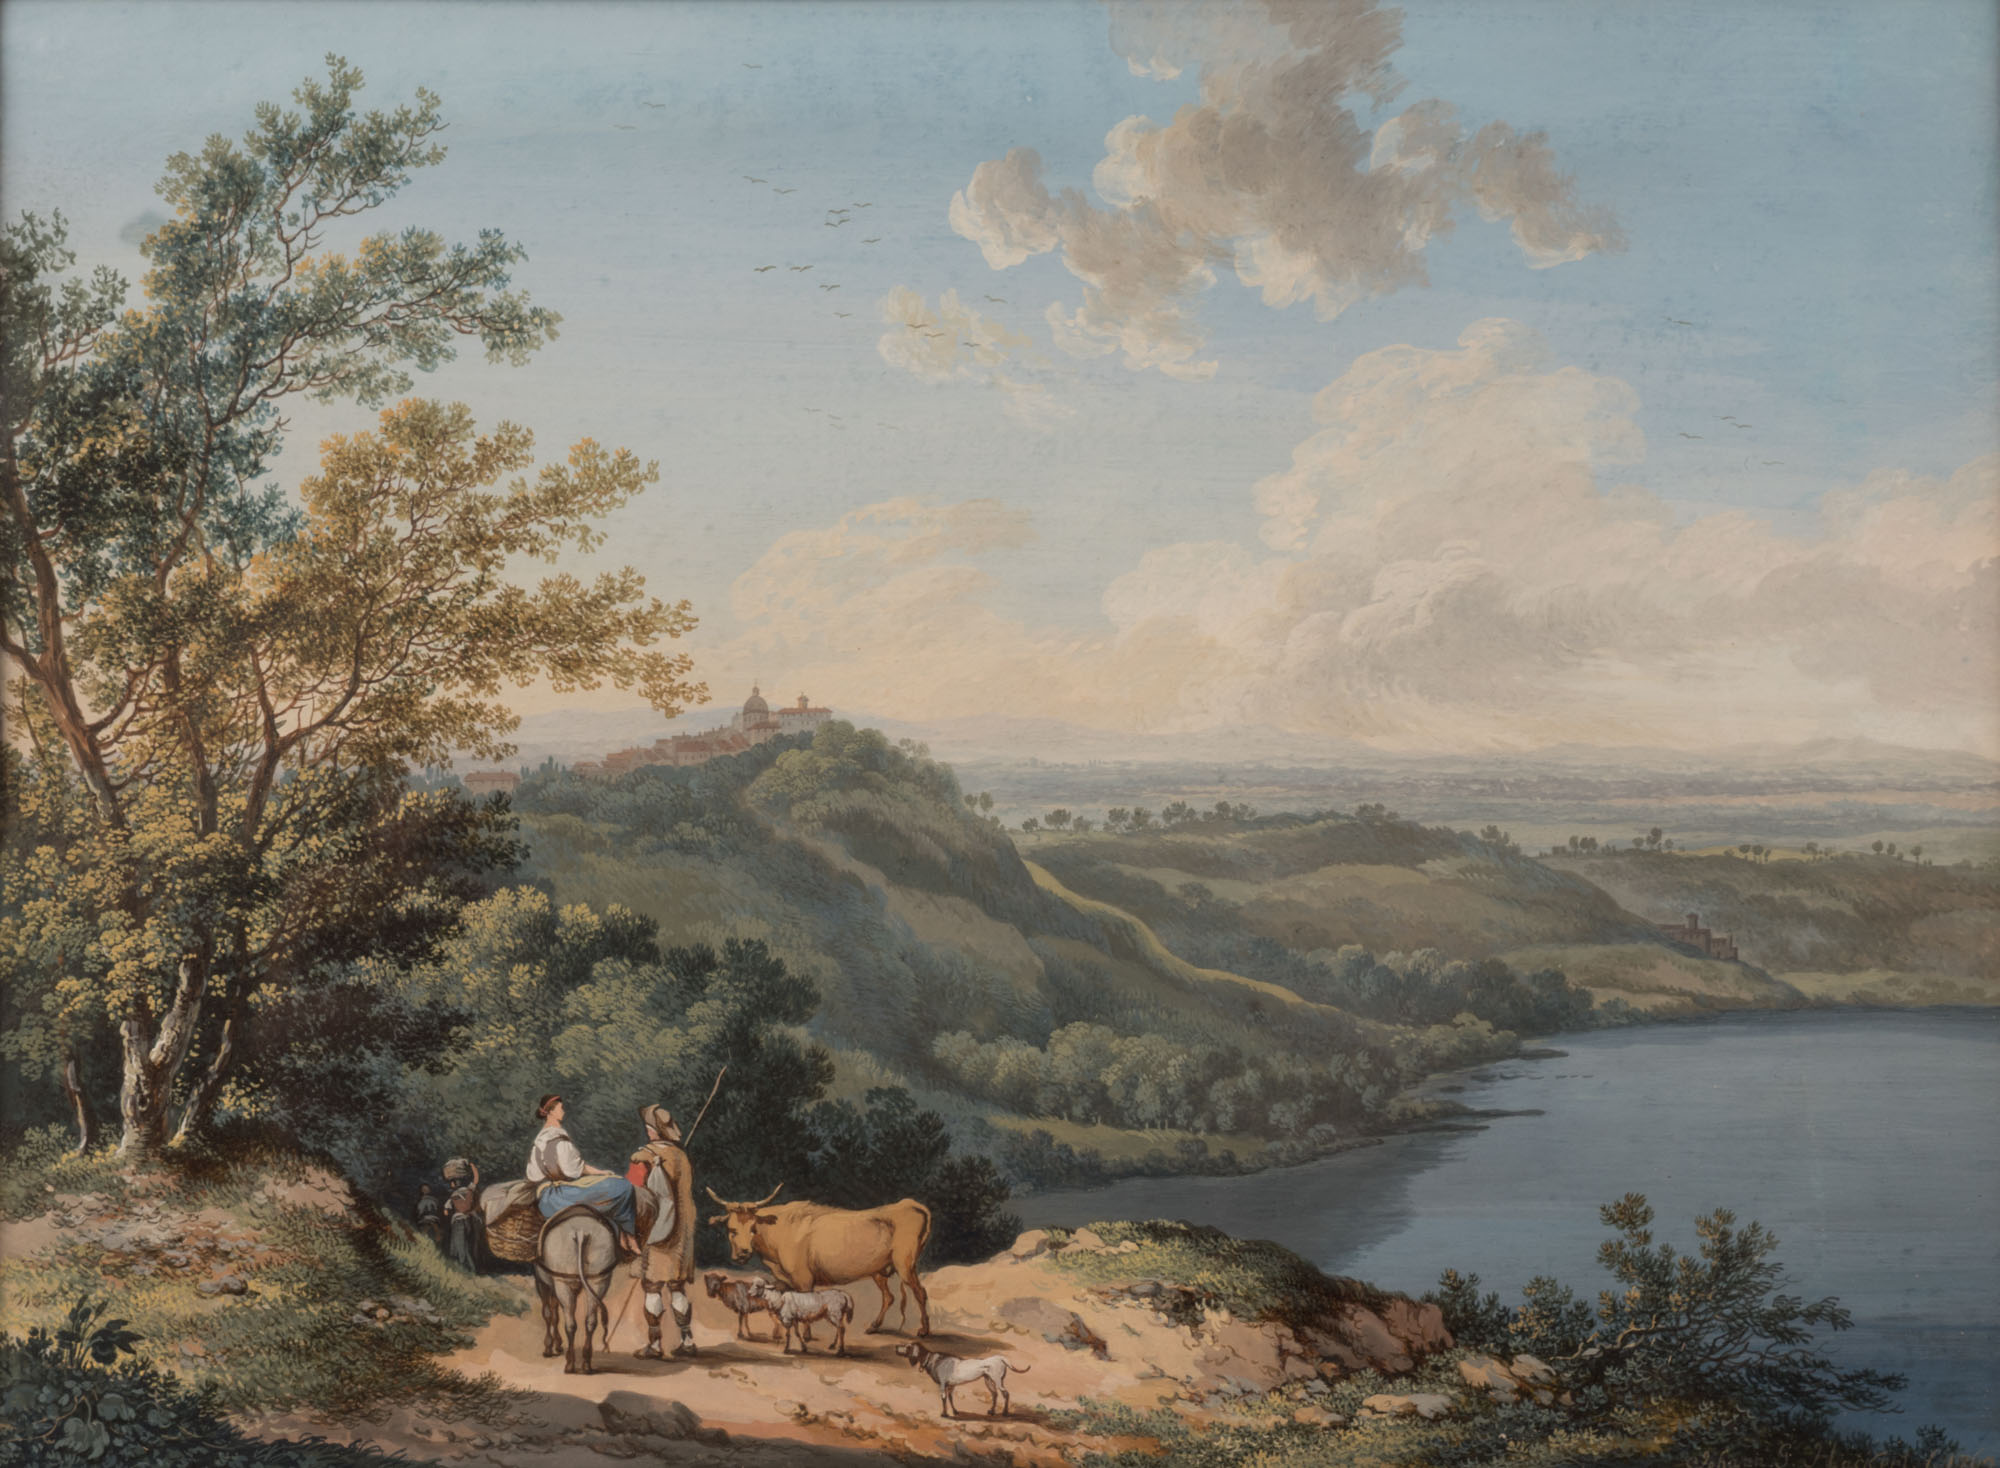 Drovers in a Landscape near a Lake, by Johann-Gottlieb Hackert (1744-1773).